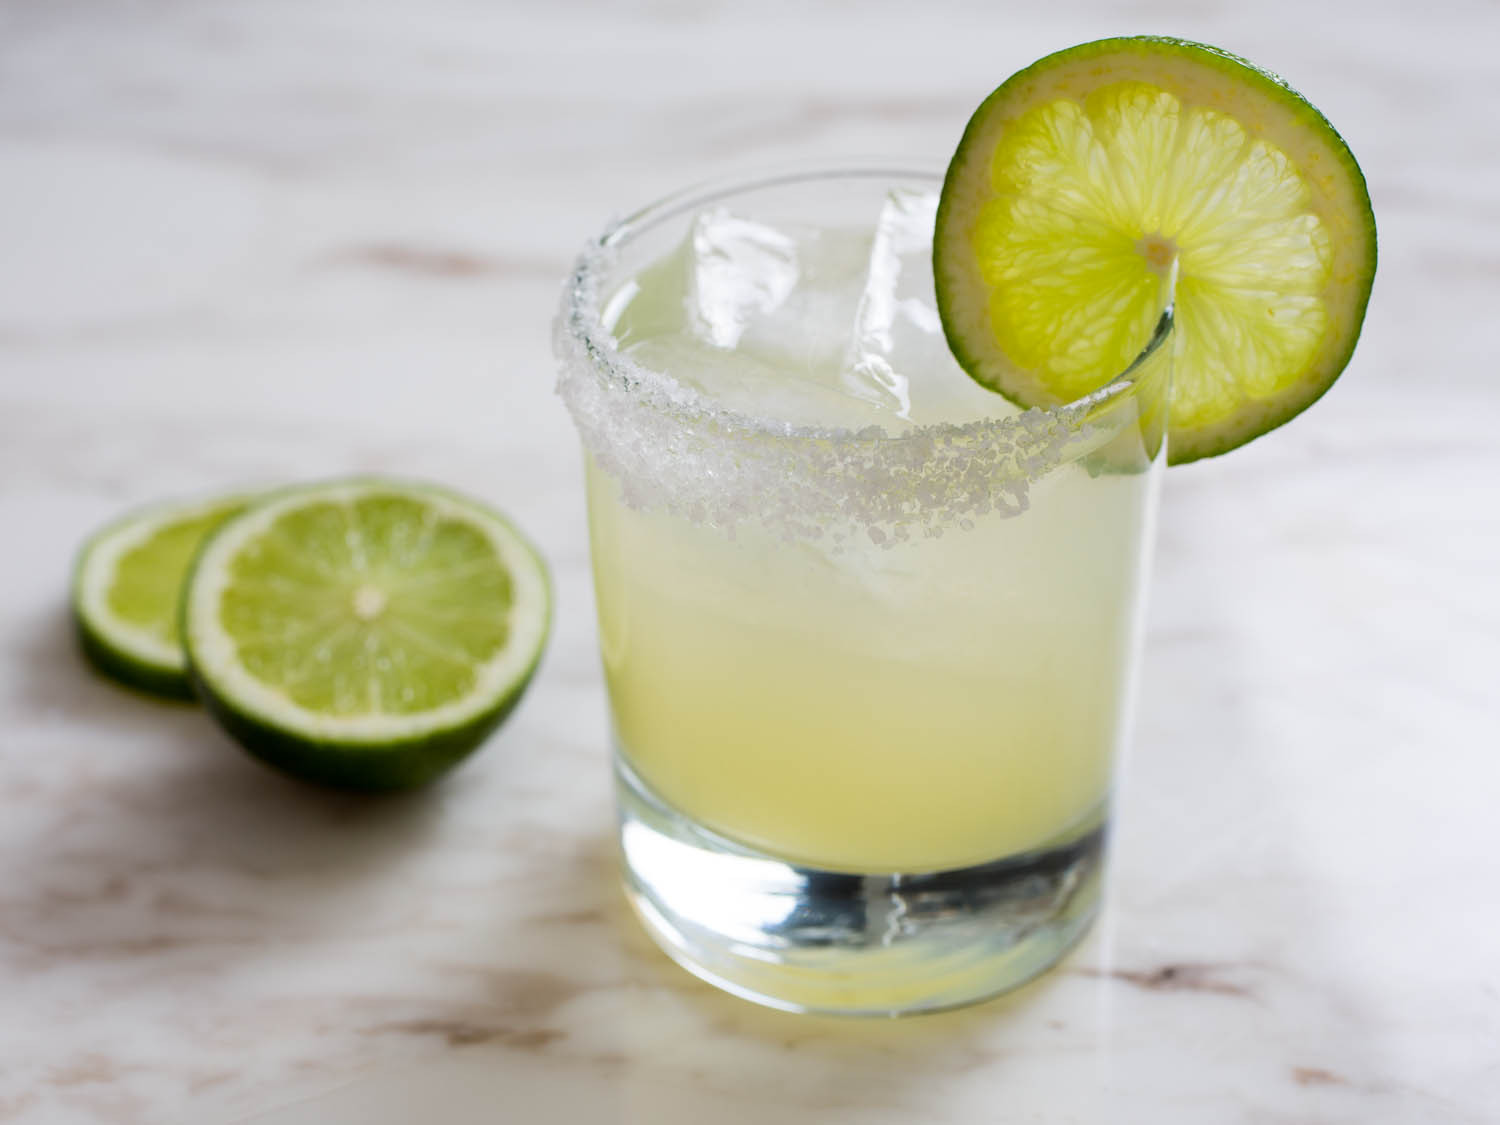 Cocktails With Tequila  Not Just Margaritas 16 Tequila Cocktail Recipes for Cinco